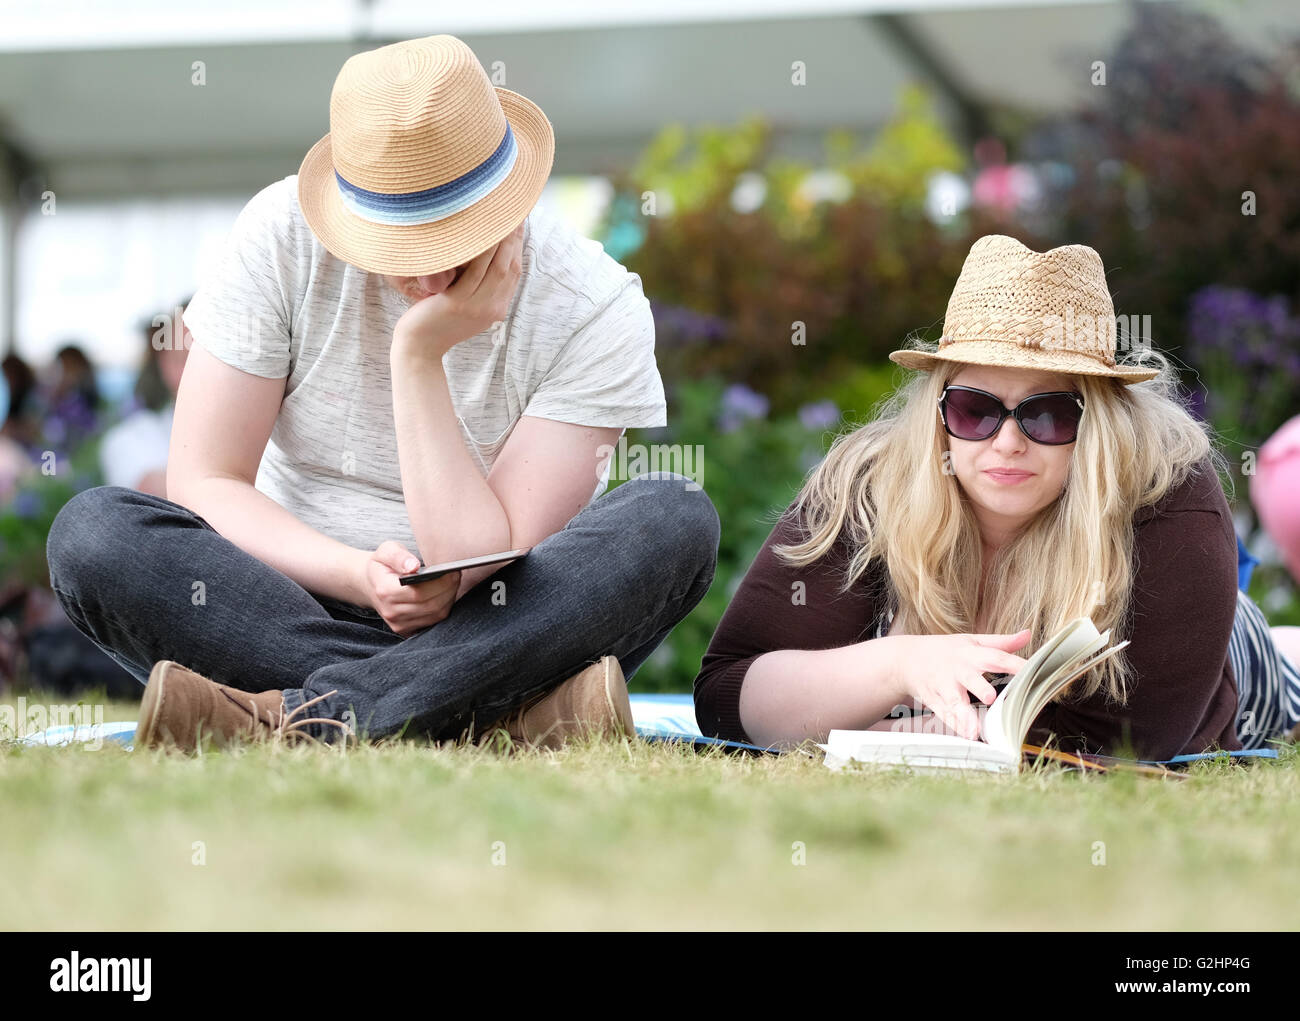 Hay Festival, Wales, UK - May 2016 -  A couple relax reading on the Hay Book Festival lawns between events. - Stock Image